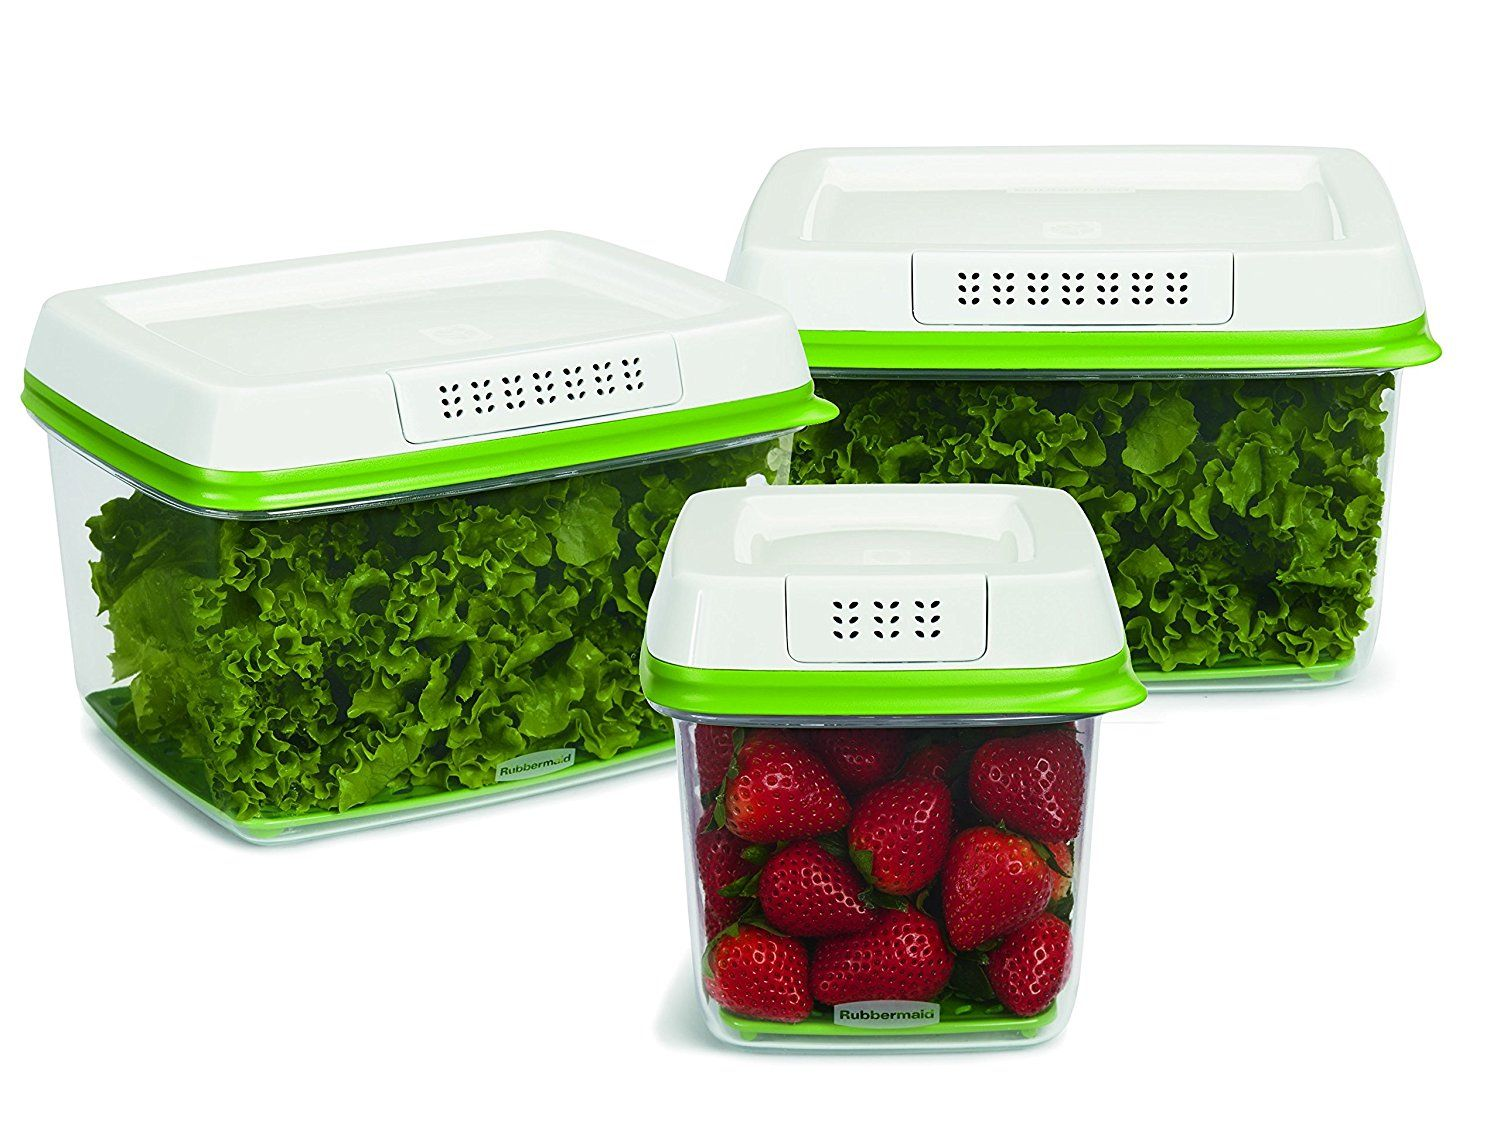 Rubbermaid Freshworks Produce Saver Food Storage Containers 1